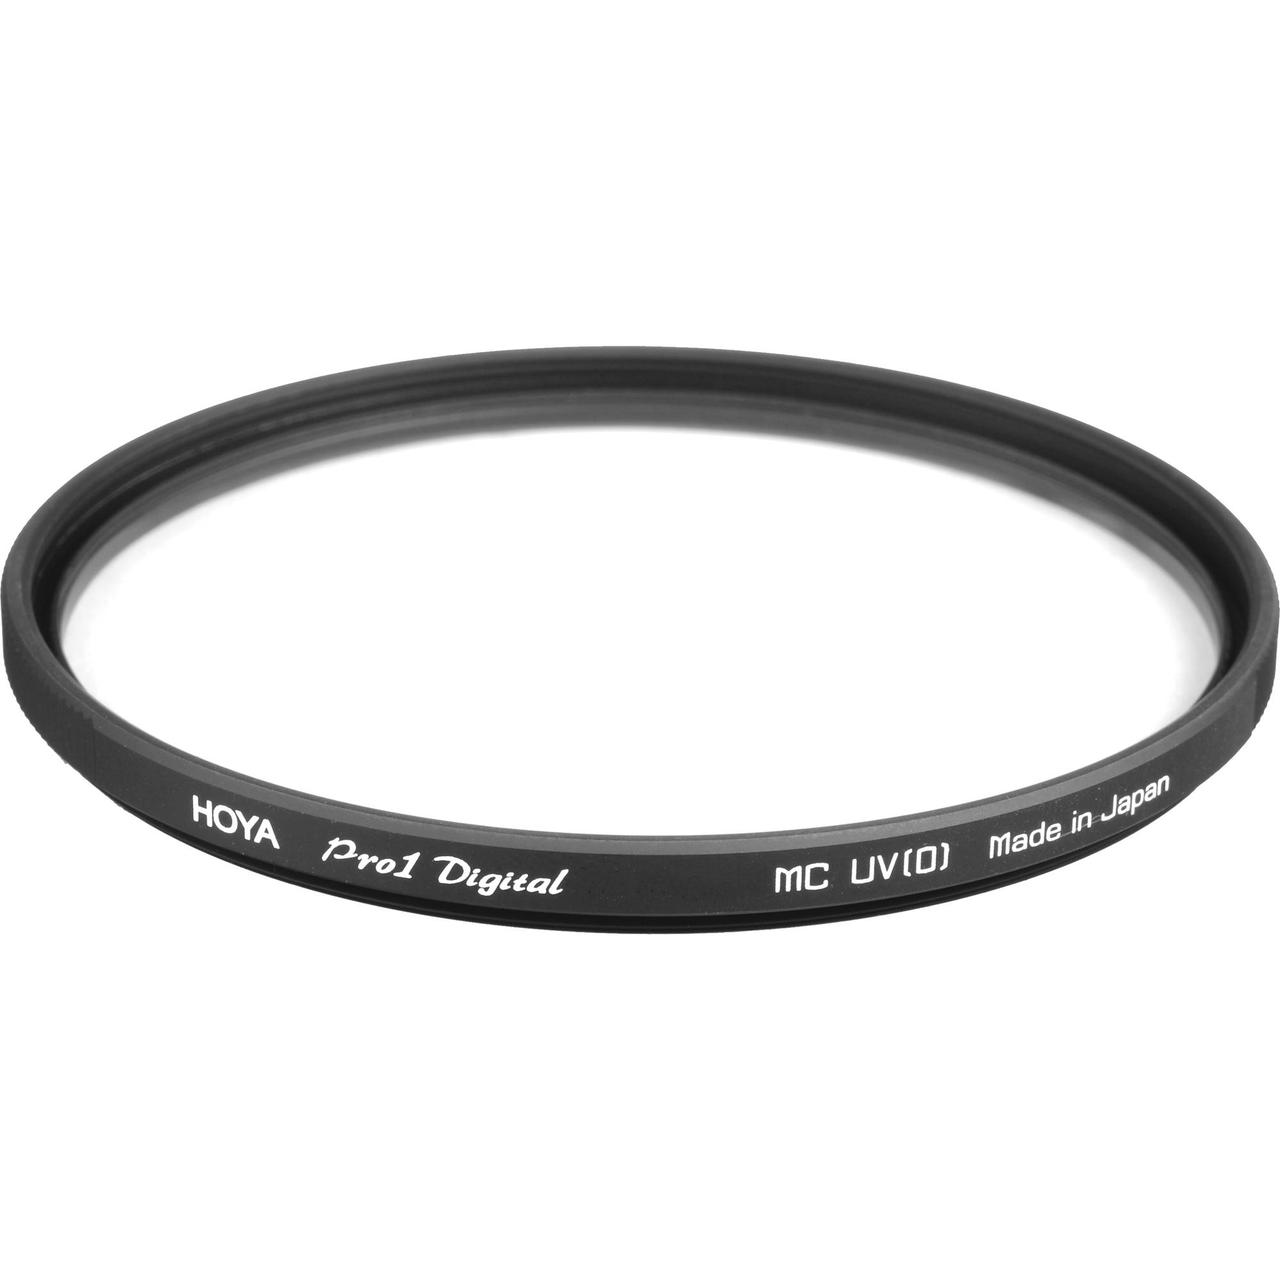 Светофильтр Hoya Pro1 Digital MC UV(0) 58mm